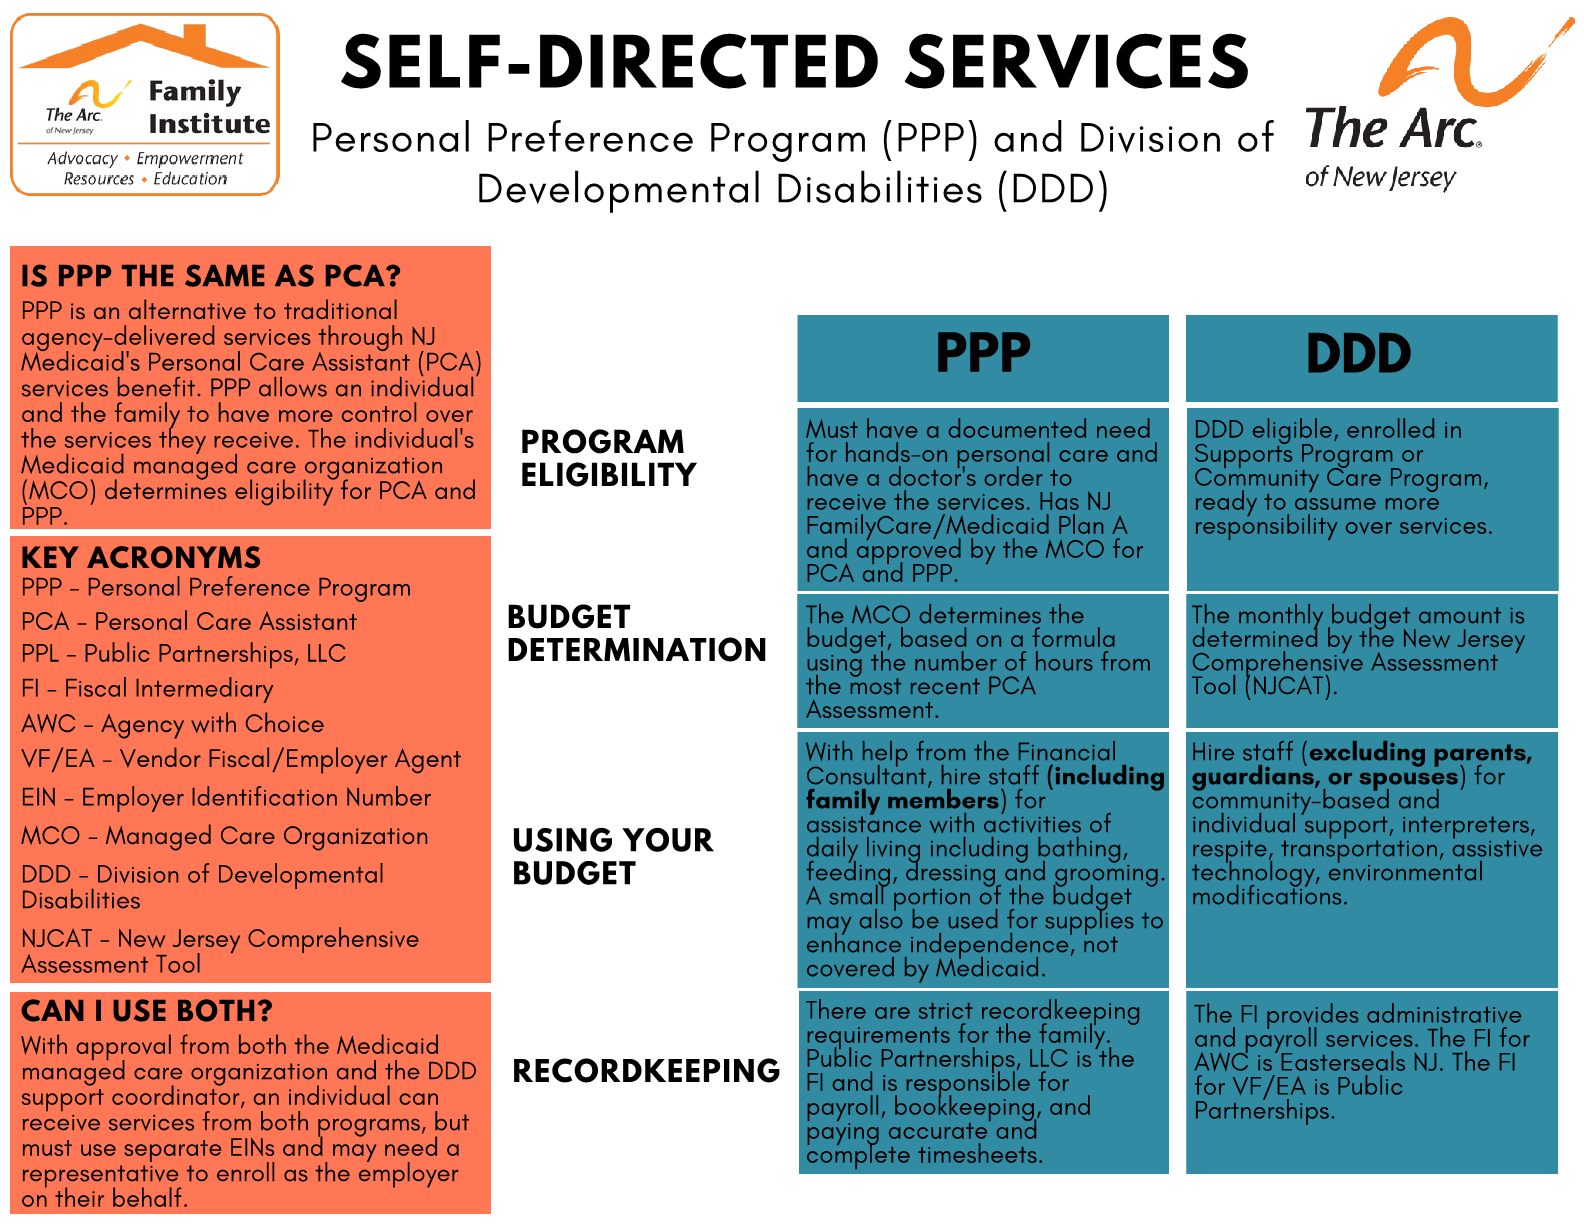 SELF-DIRECTED SERVICES Personal Preference Program (PPP) and Division of Developmental Disabilities (DDD)